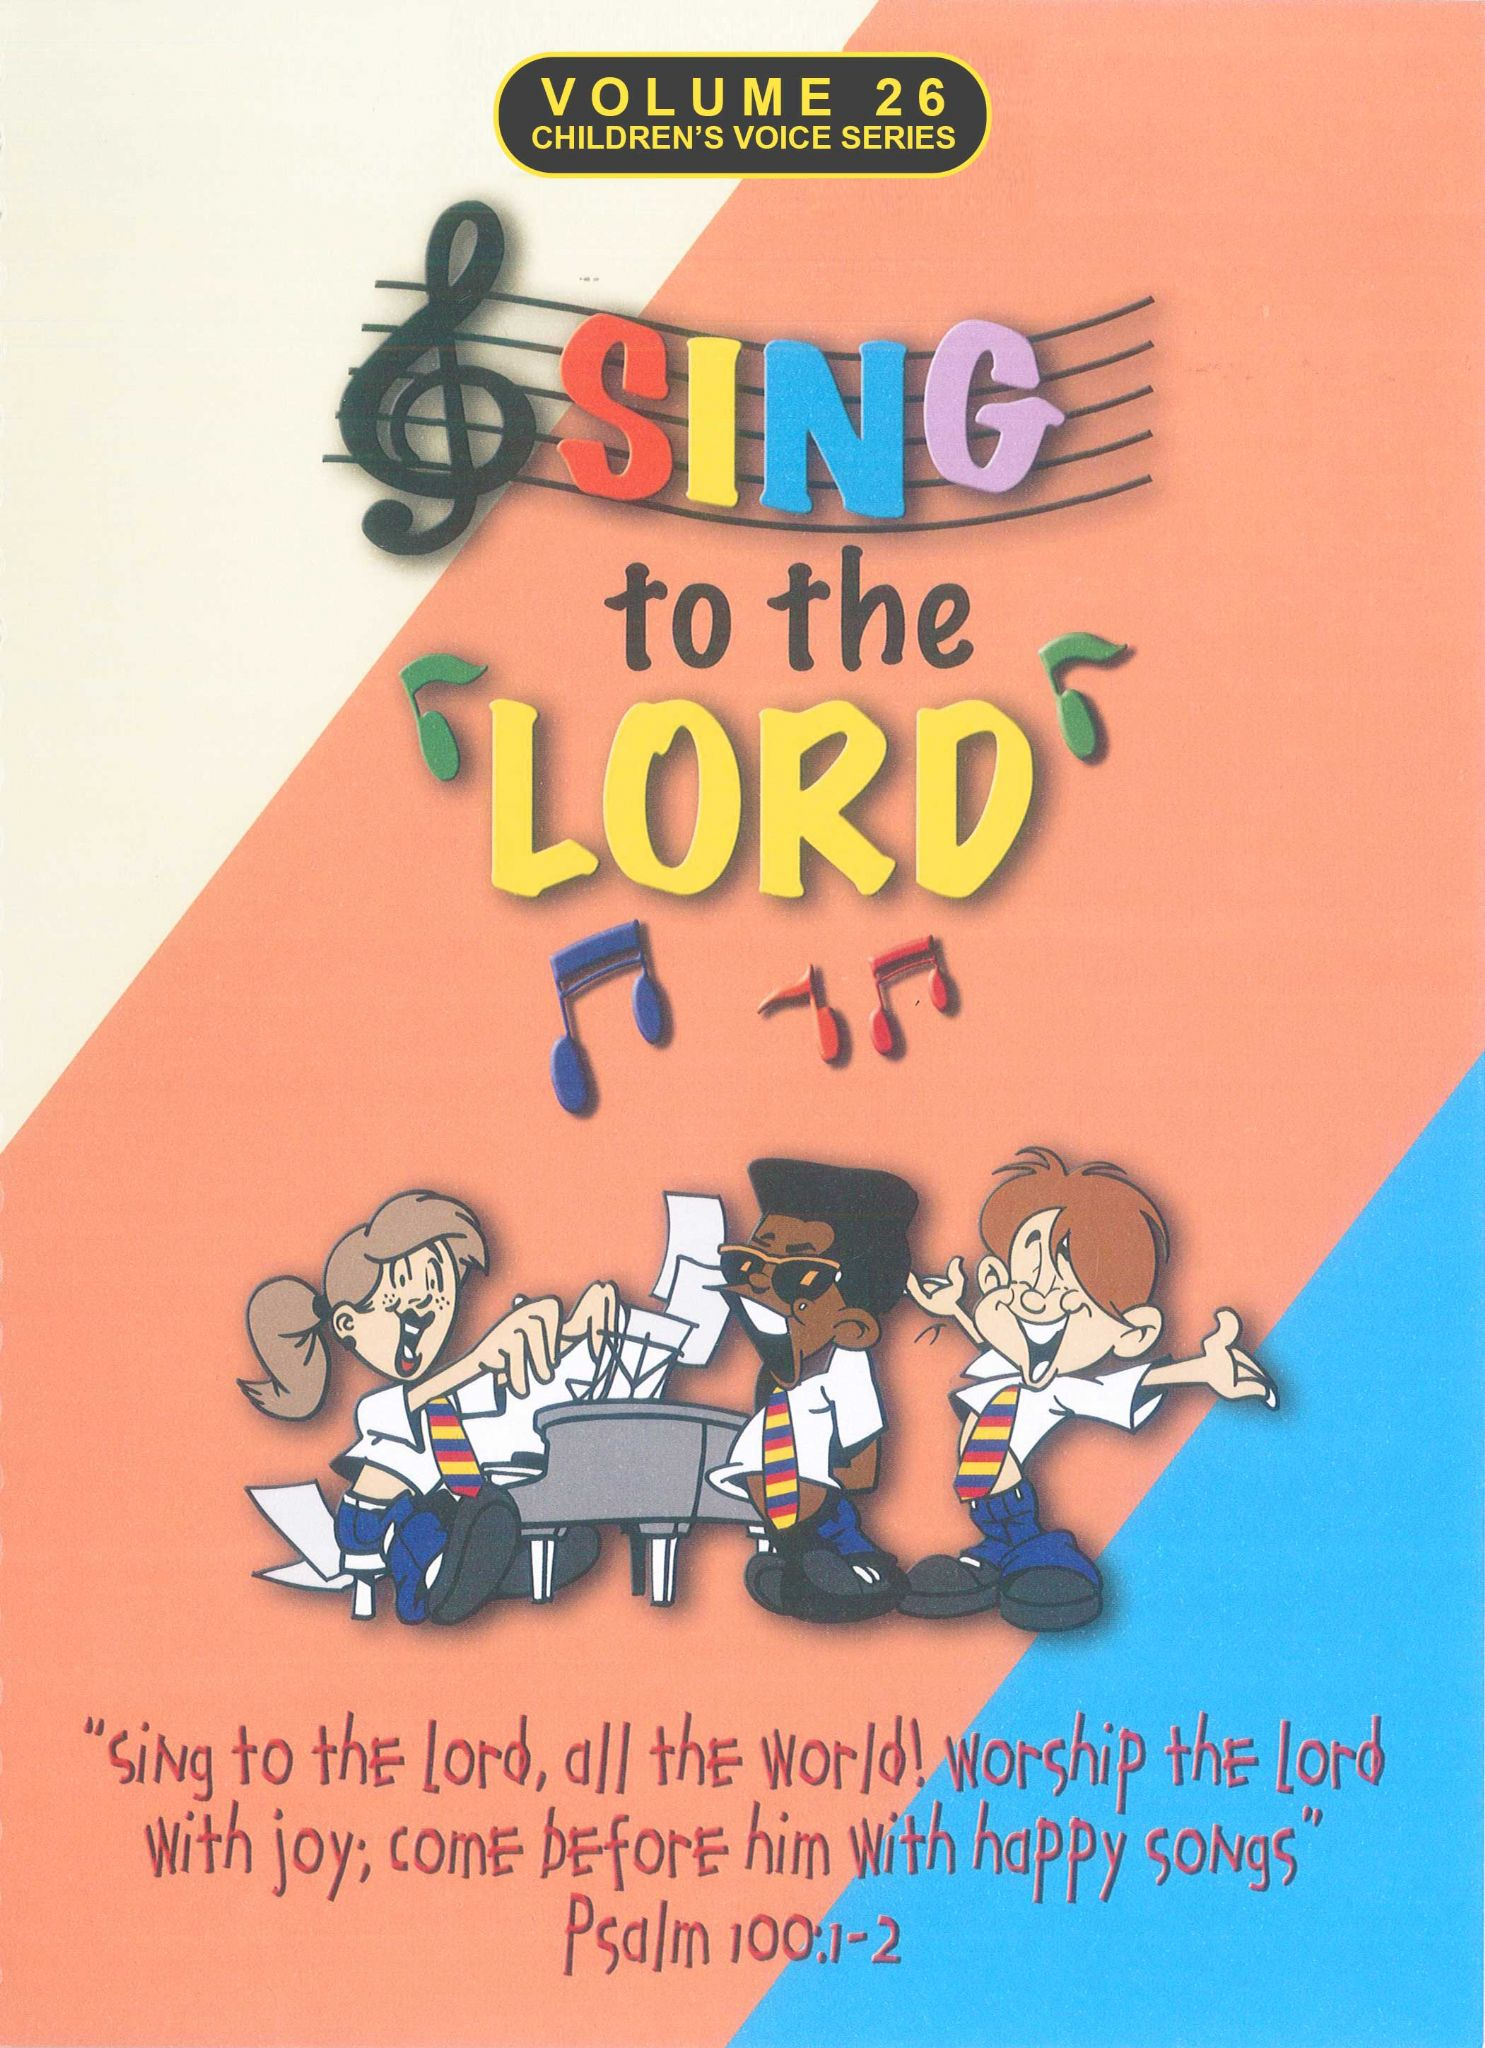 Sing To The Lord Children's Voices Volume 26